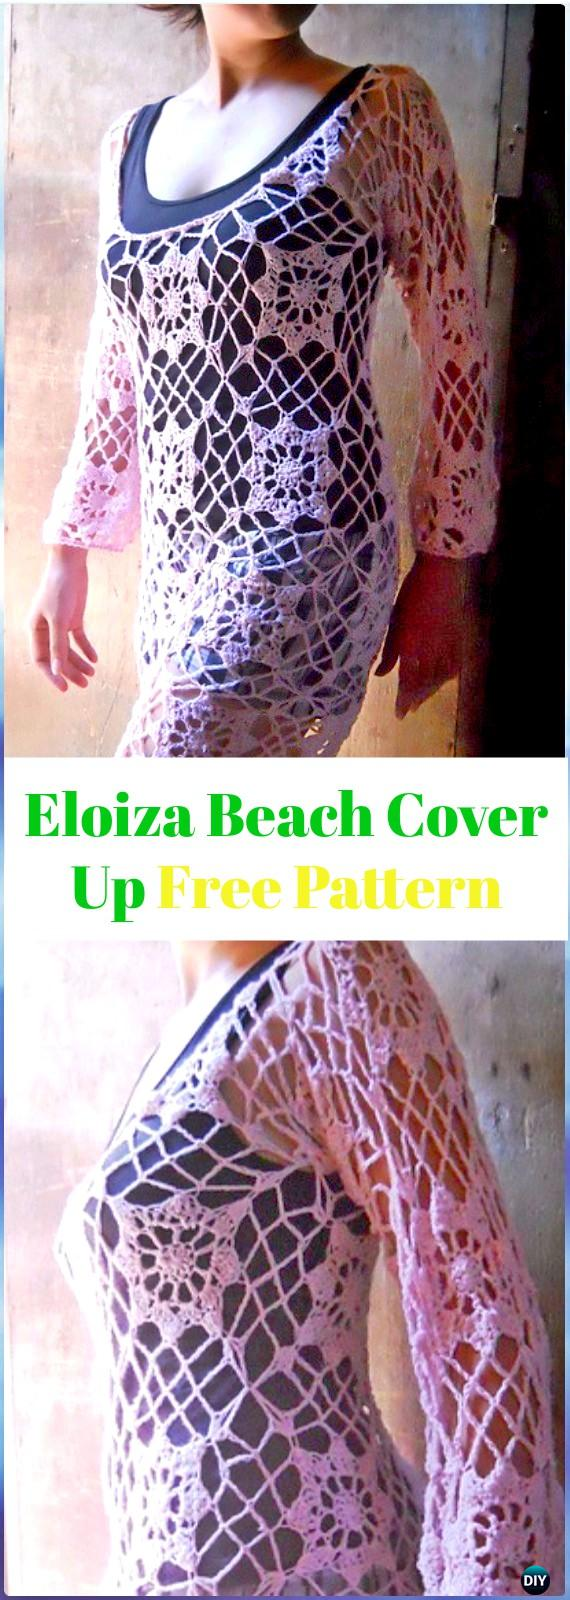 Crochet Eloiza Beach Cover Up Free Pattern - Crochet Beach Cover Up Free Patterns